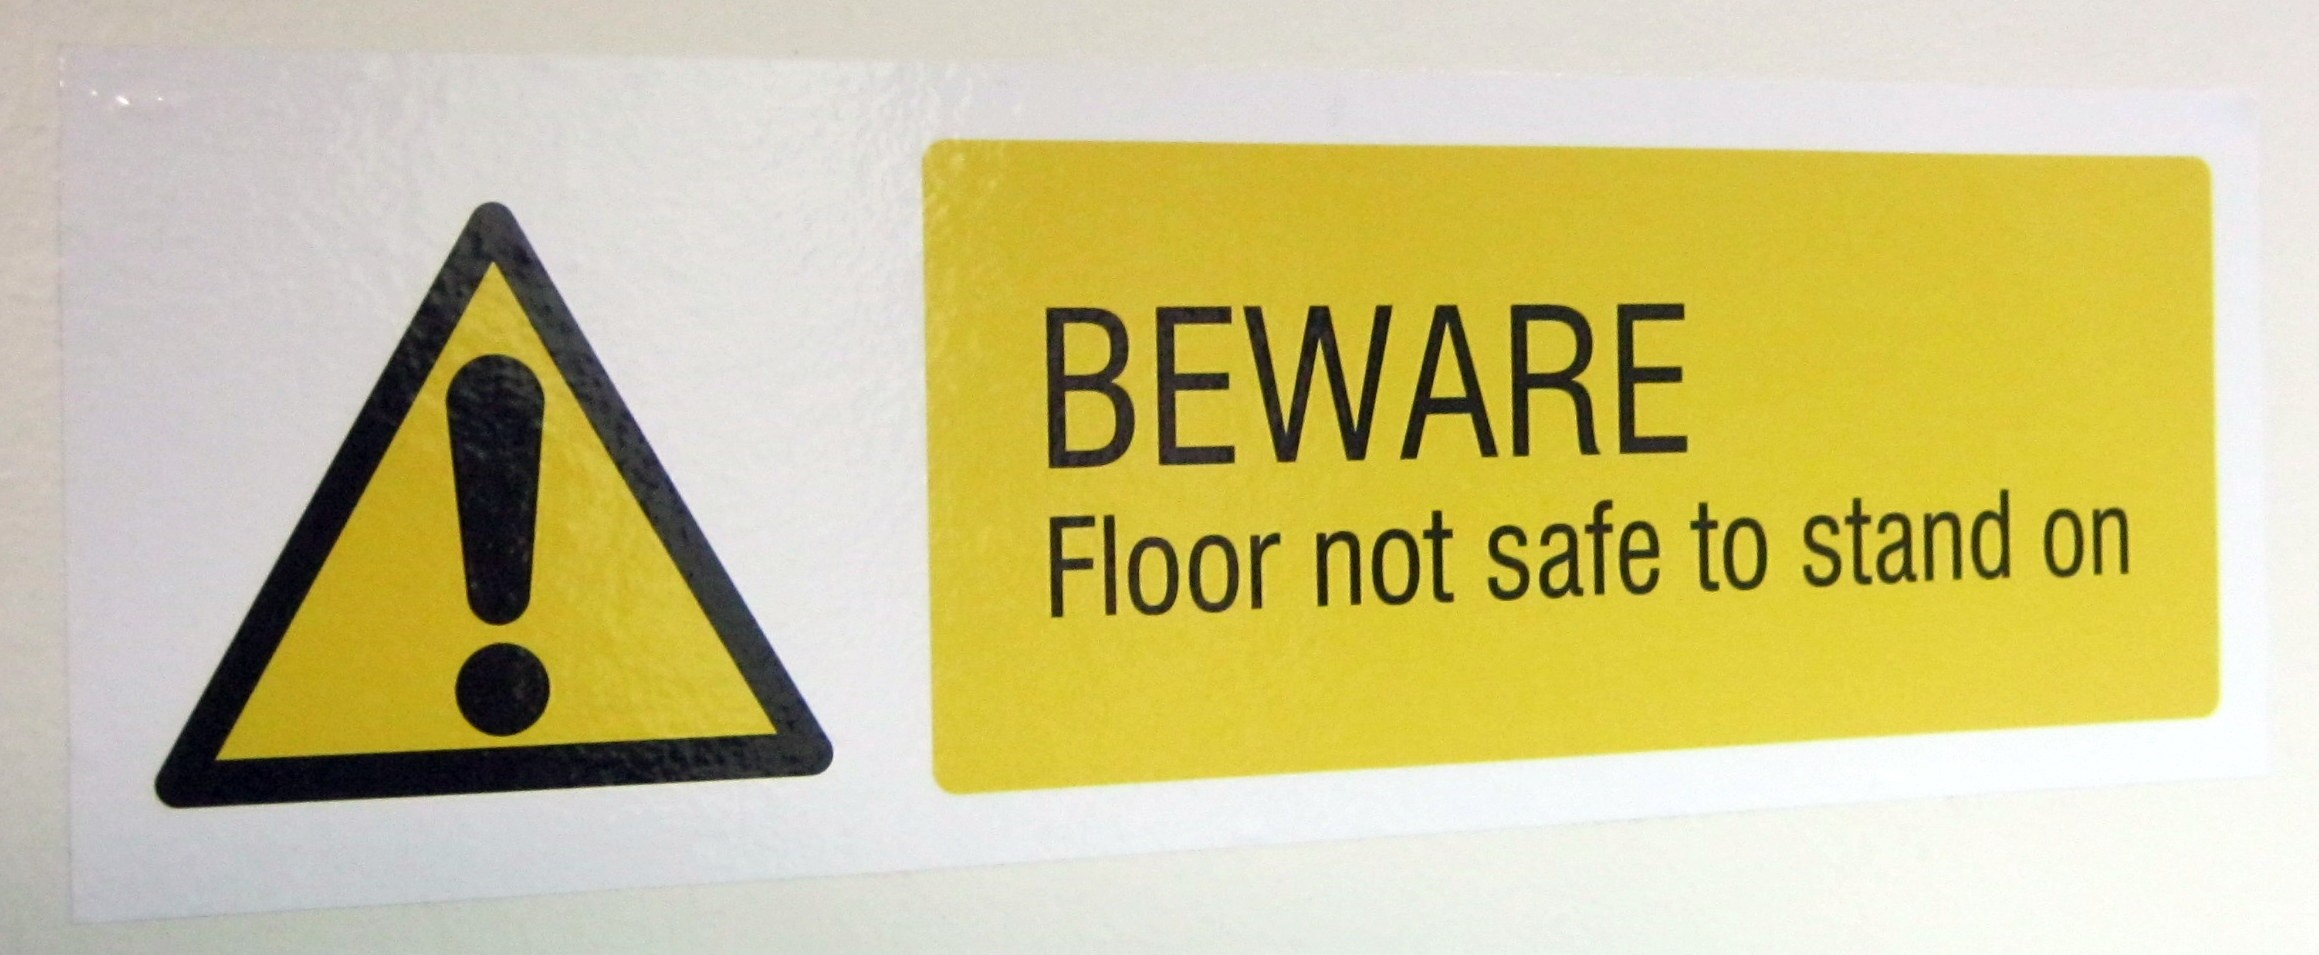 Beware Floor not safe to stand on